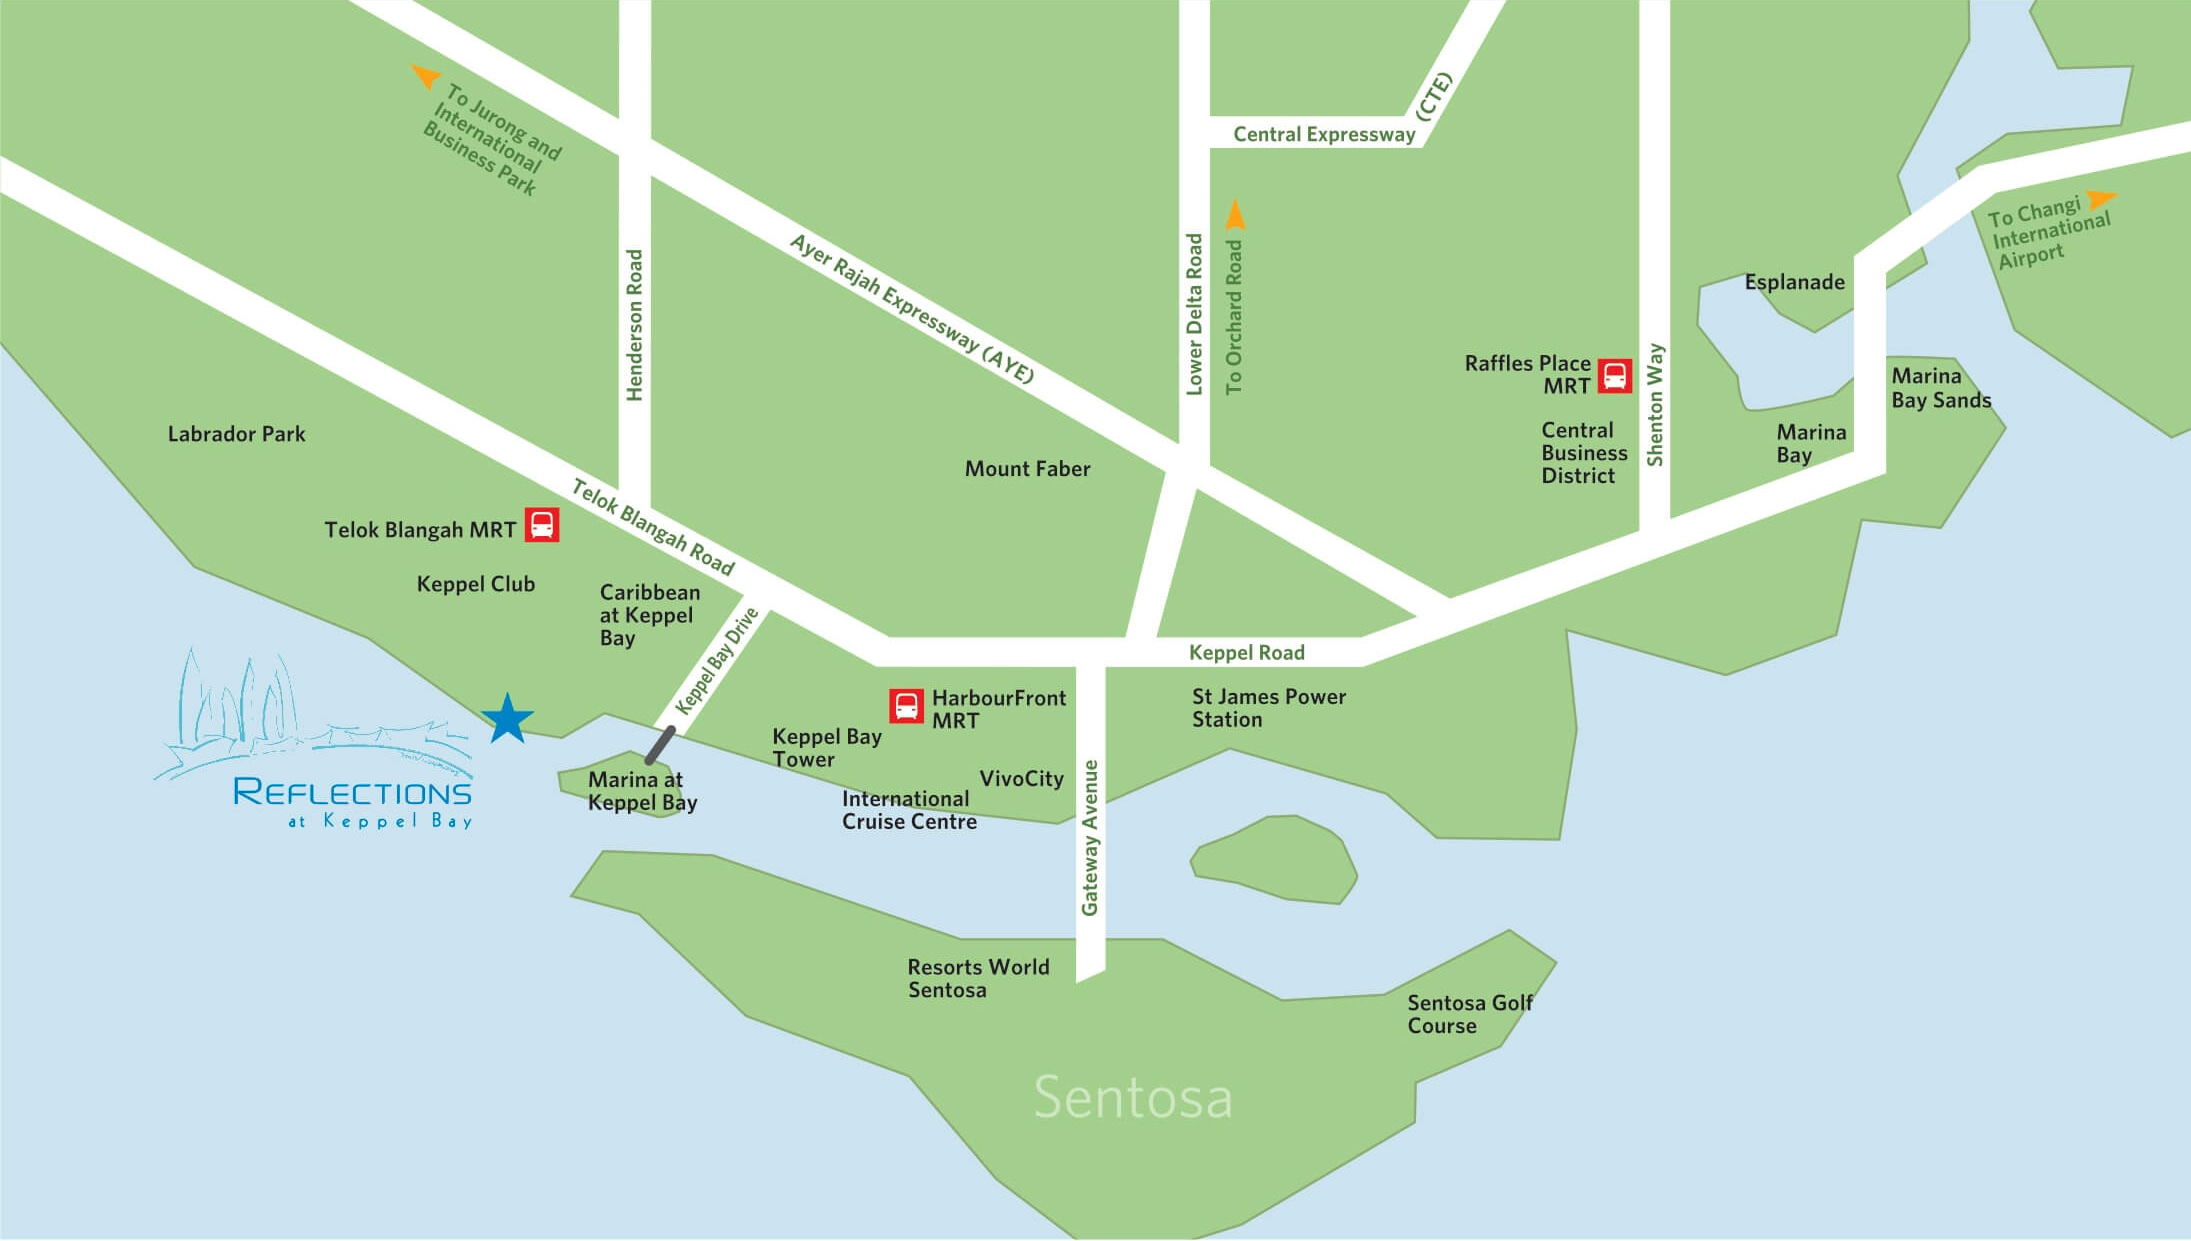 Reflections at Keppel Bay location map